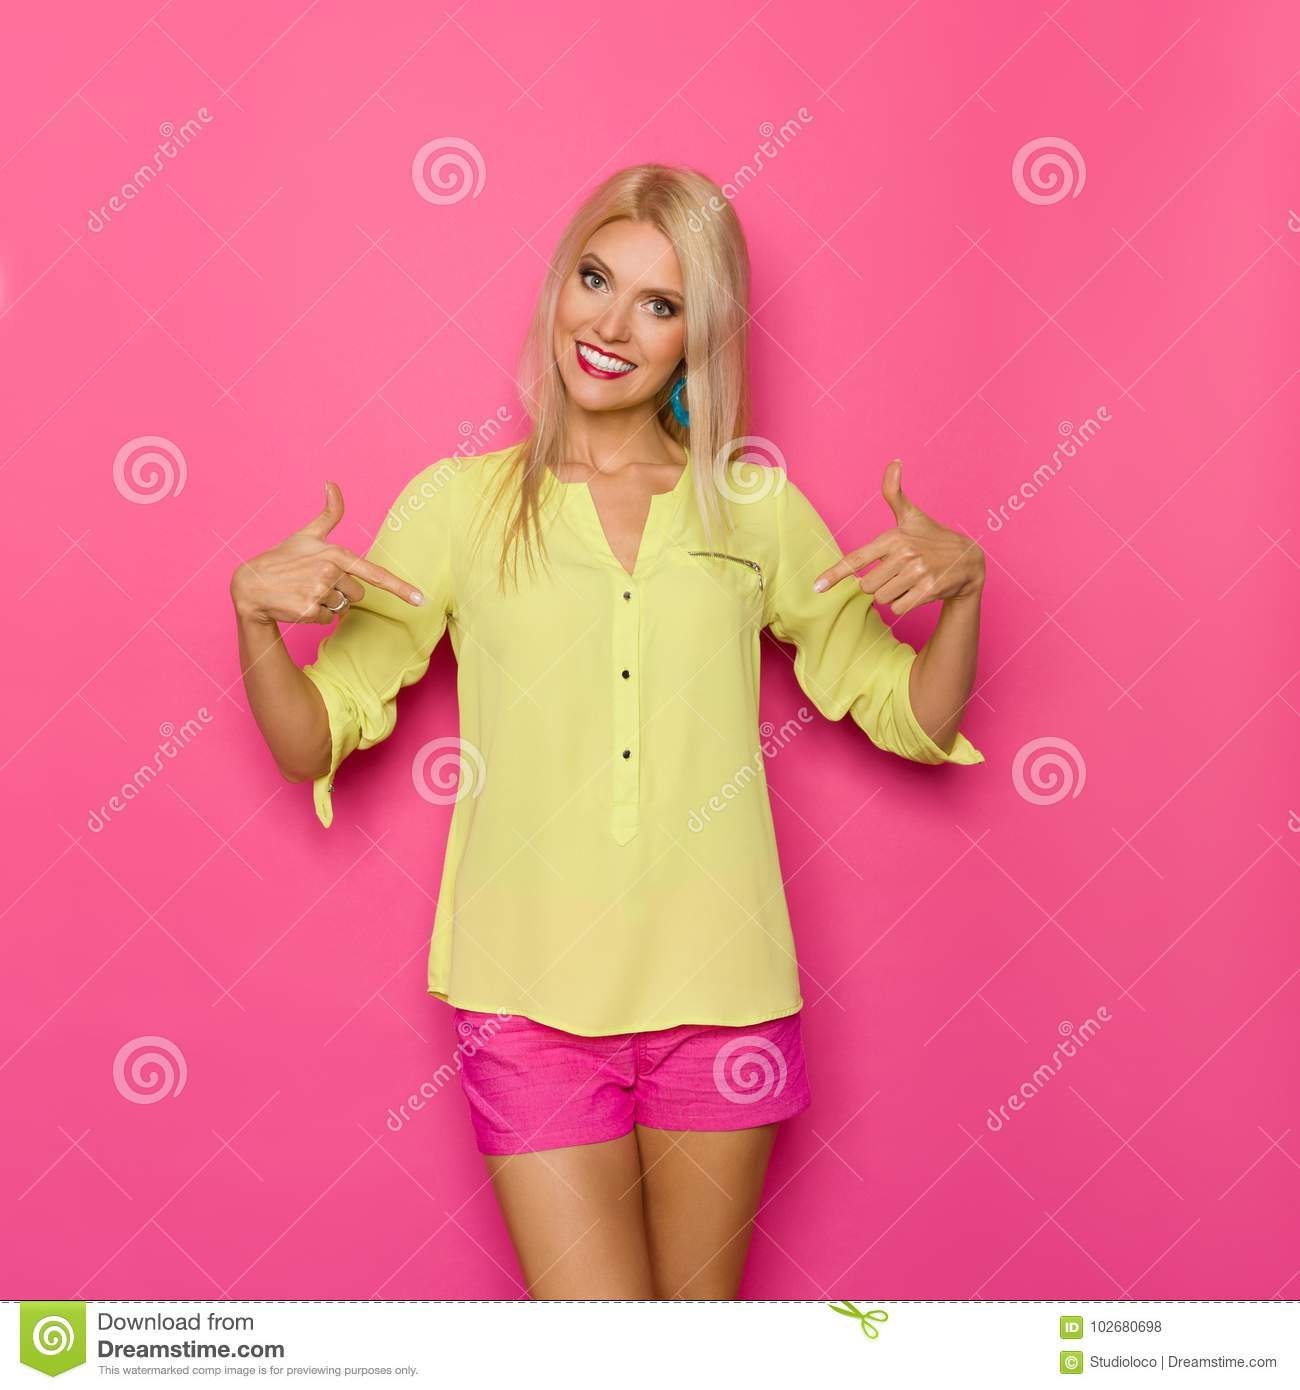 f3939d4687ac04 Beautiful blond young woman in yellow shirt and pink shorts is smiling and  pointing at her torso. Three quarter length studio shot on pink background.